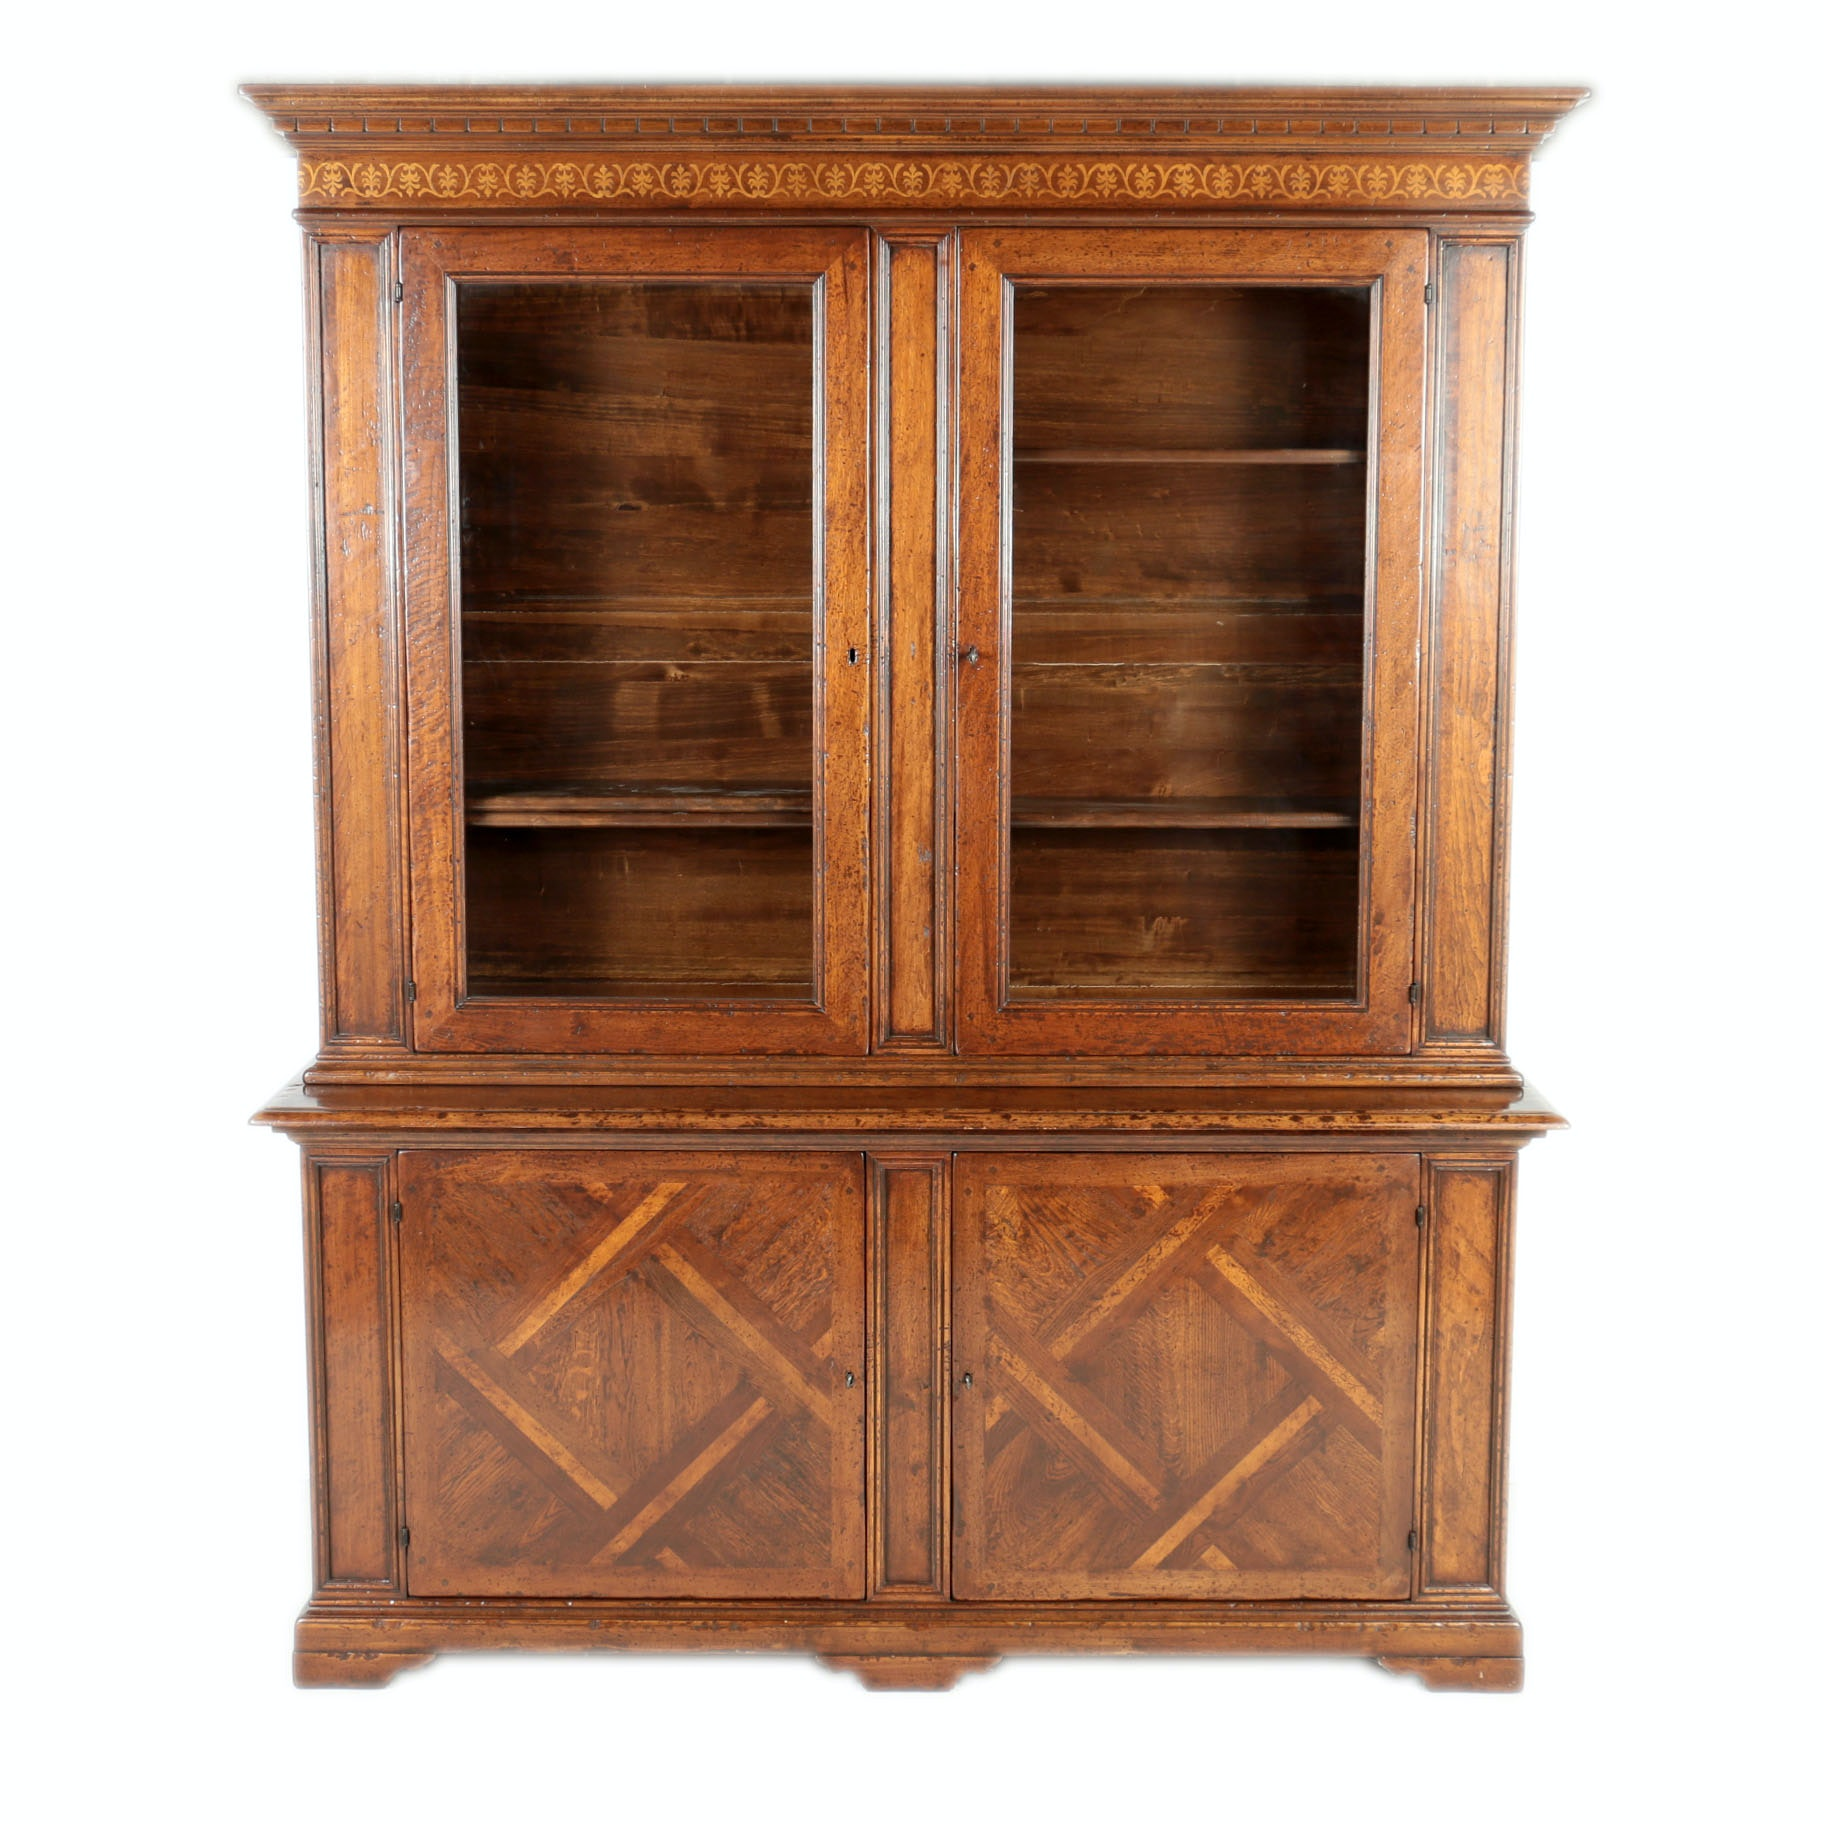 Vintage Walnut Parquetry Display Cabinet